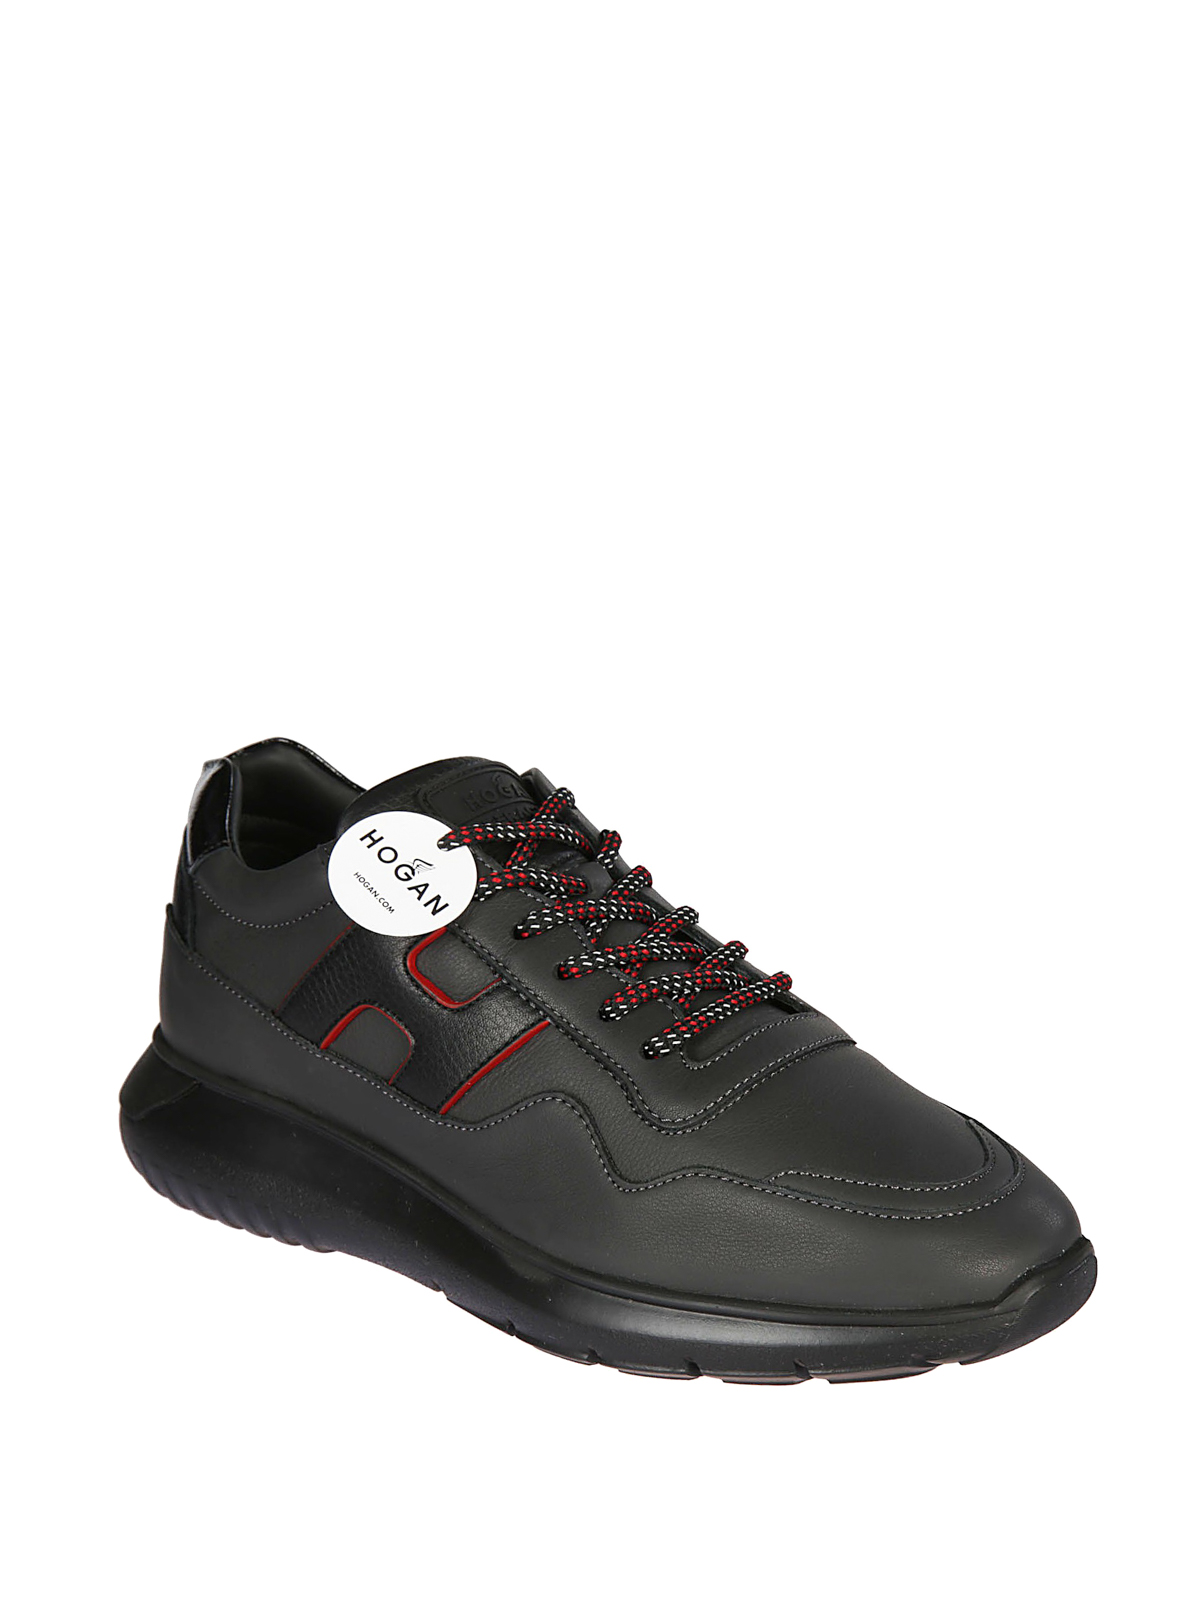 Hogan Interactive 179 Black Leather Sneakers Trainers